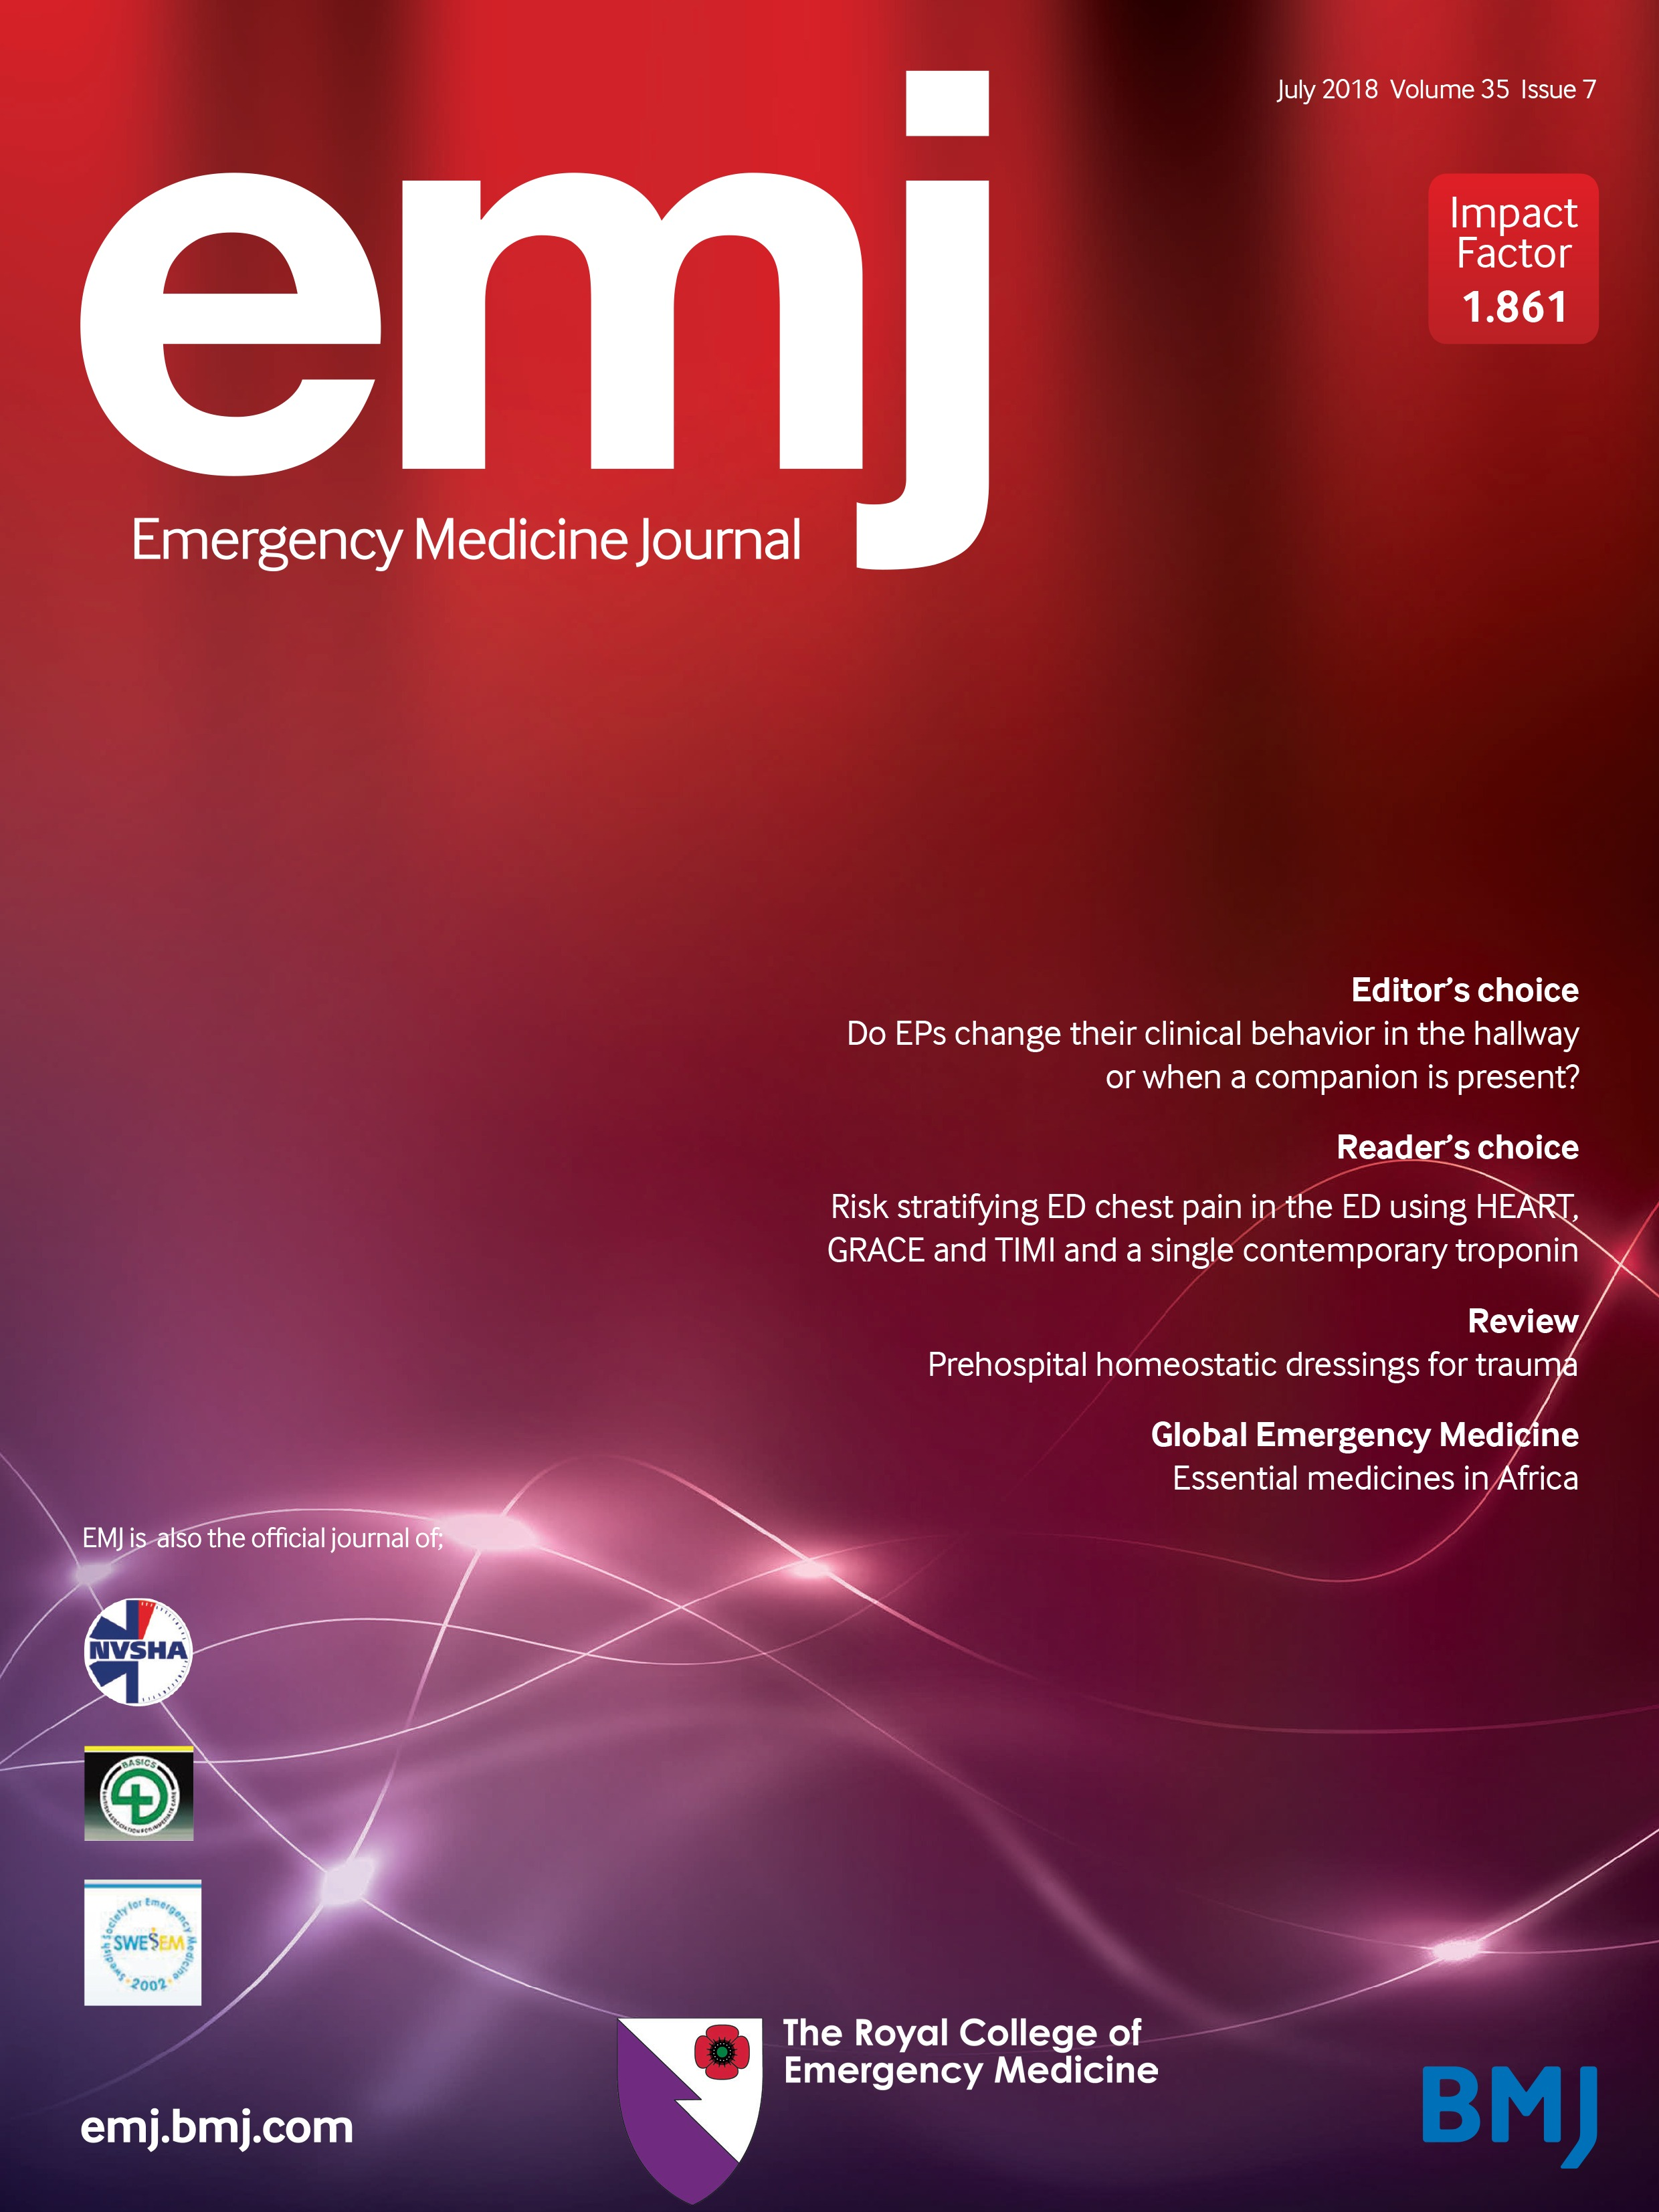 Prehospital haemostatic dressings for trauma: a systematic review